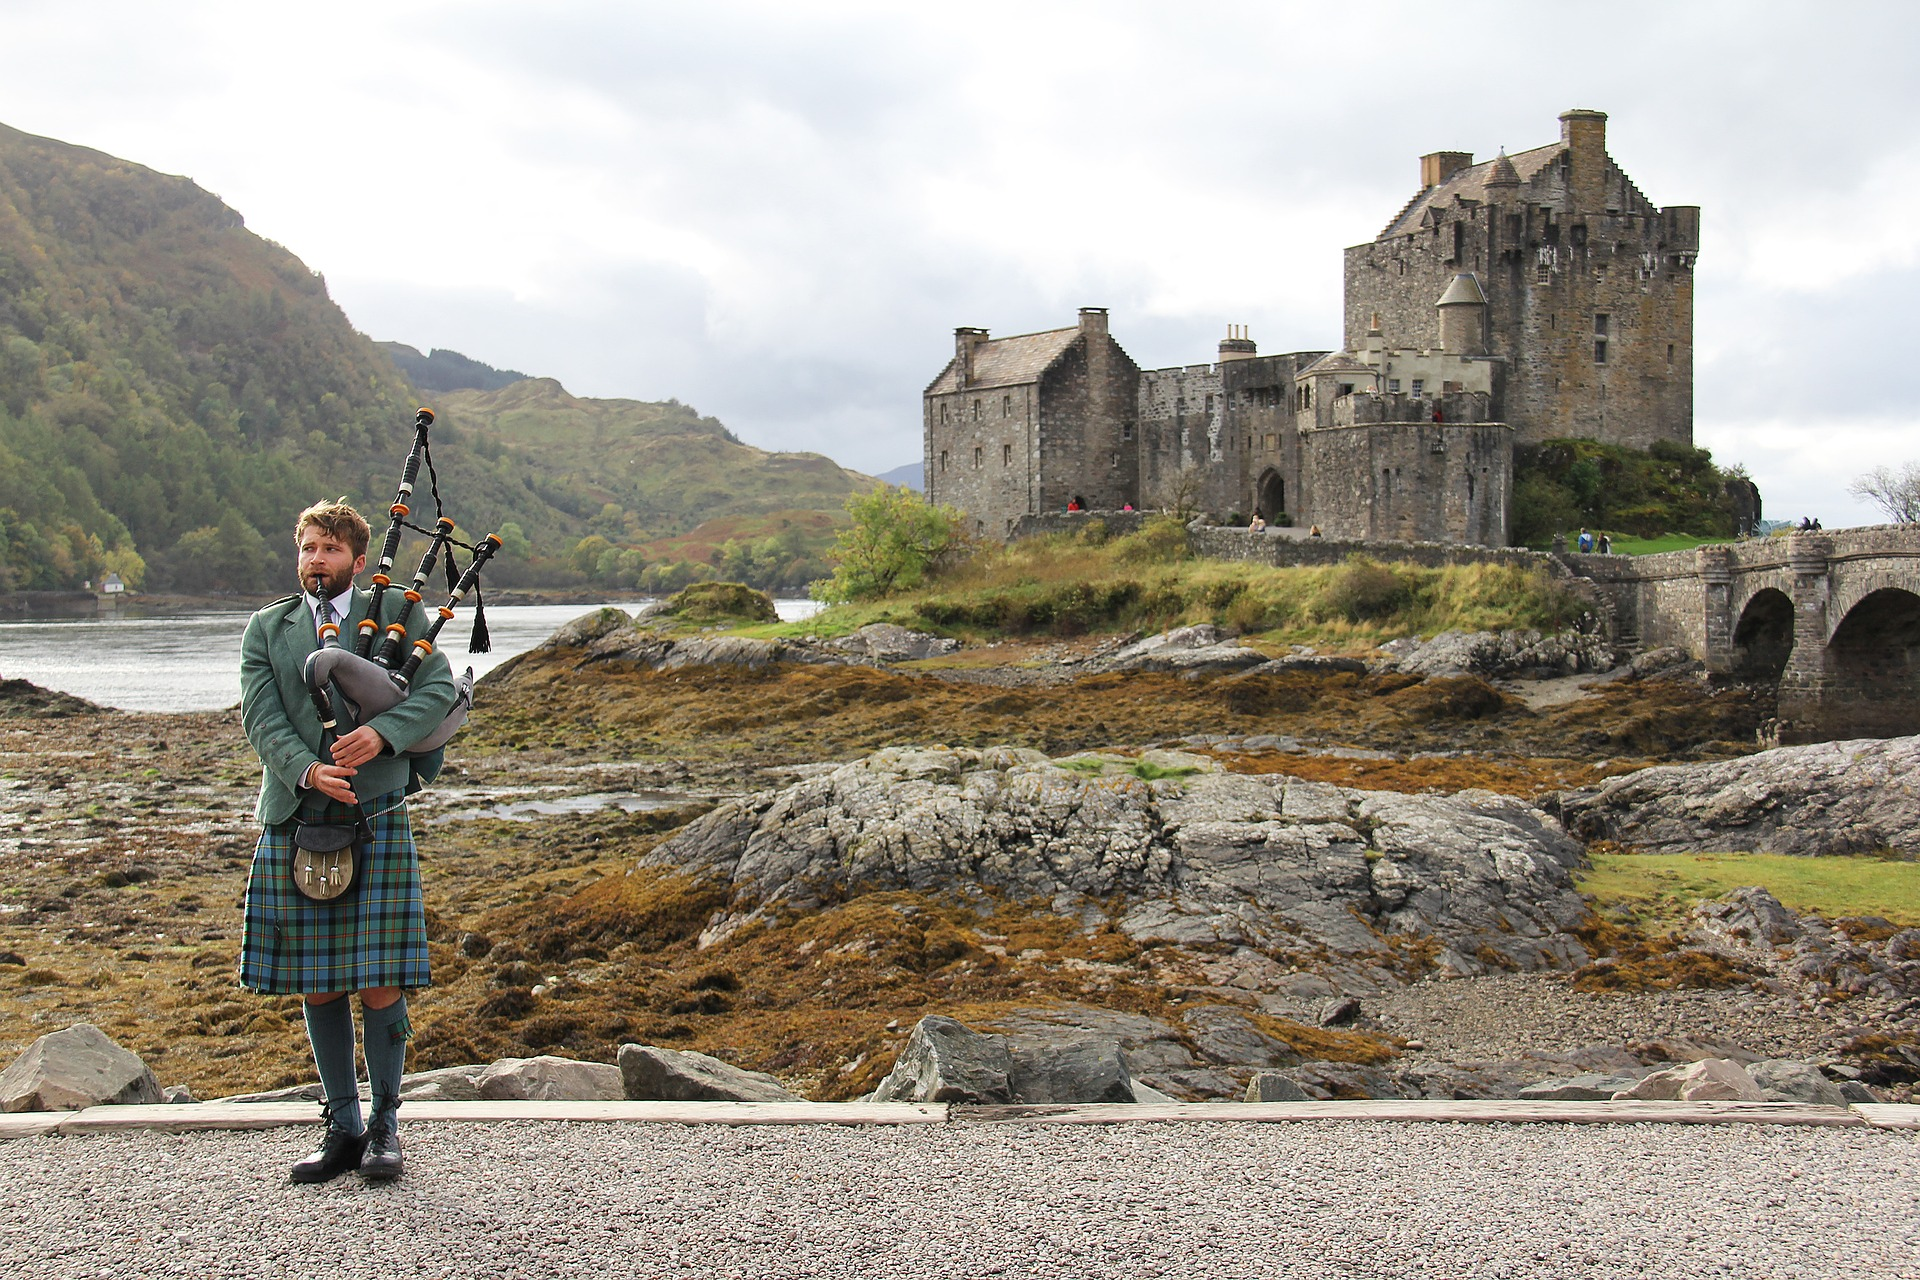 bagpipes-3031448_1920